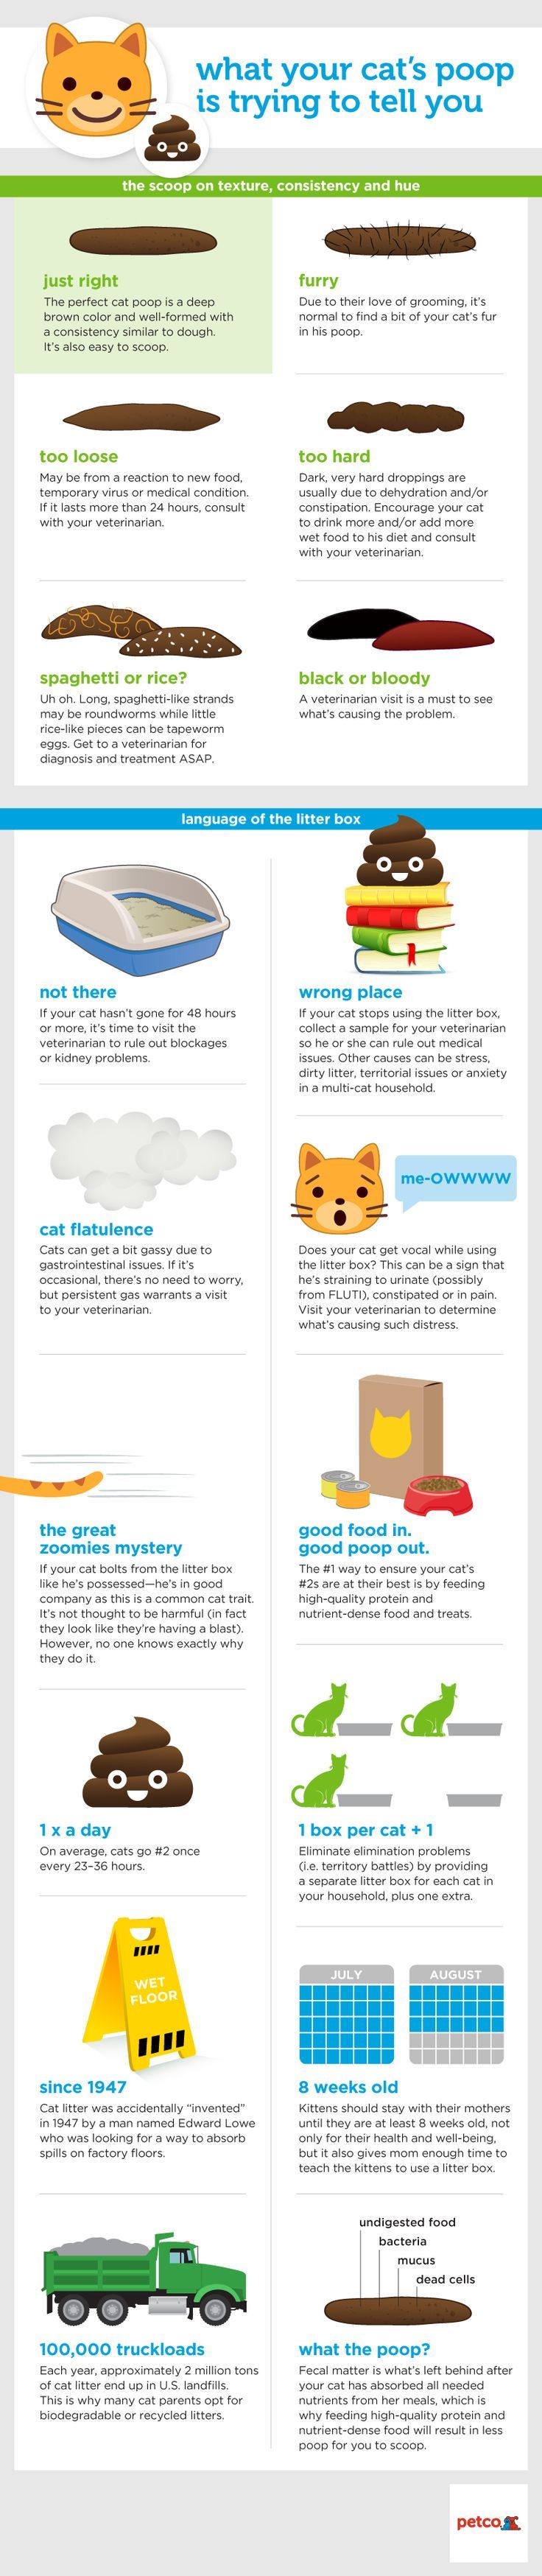 Pin On Cat Facts